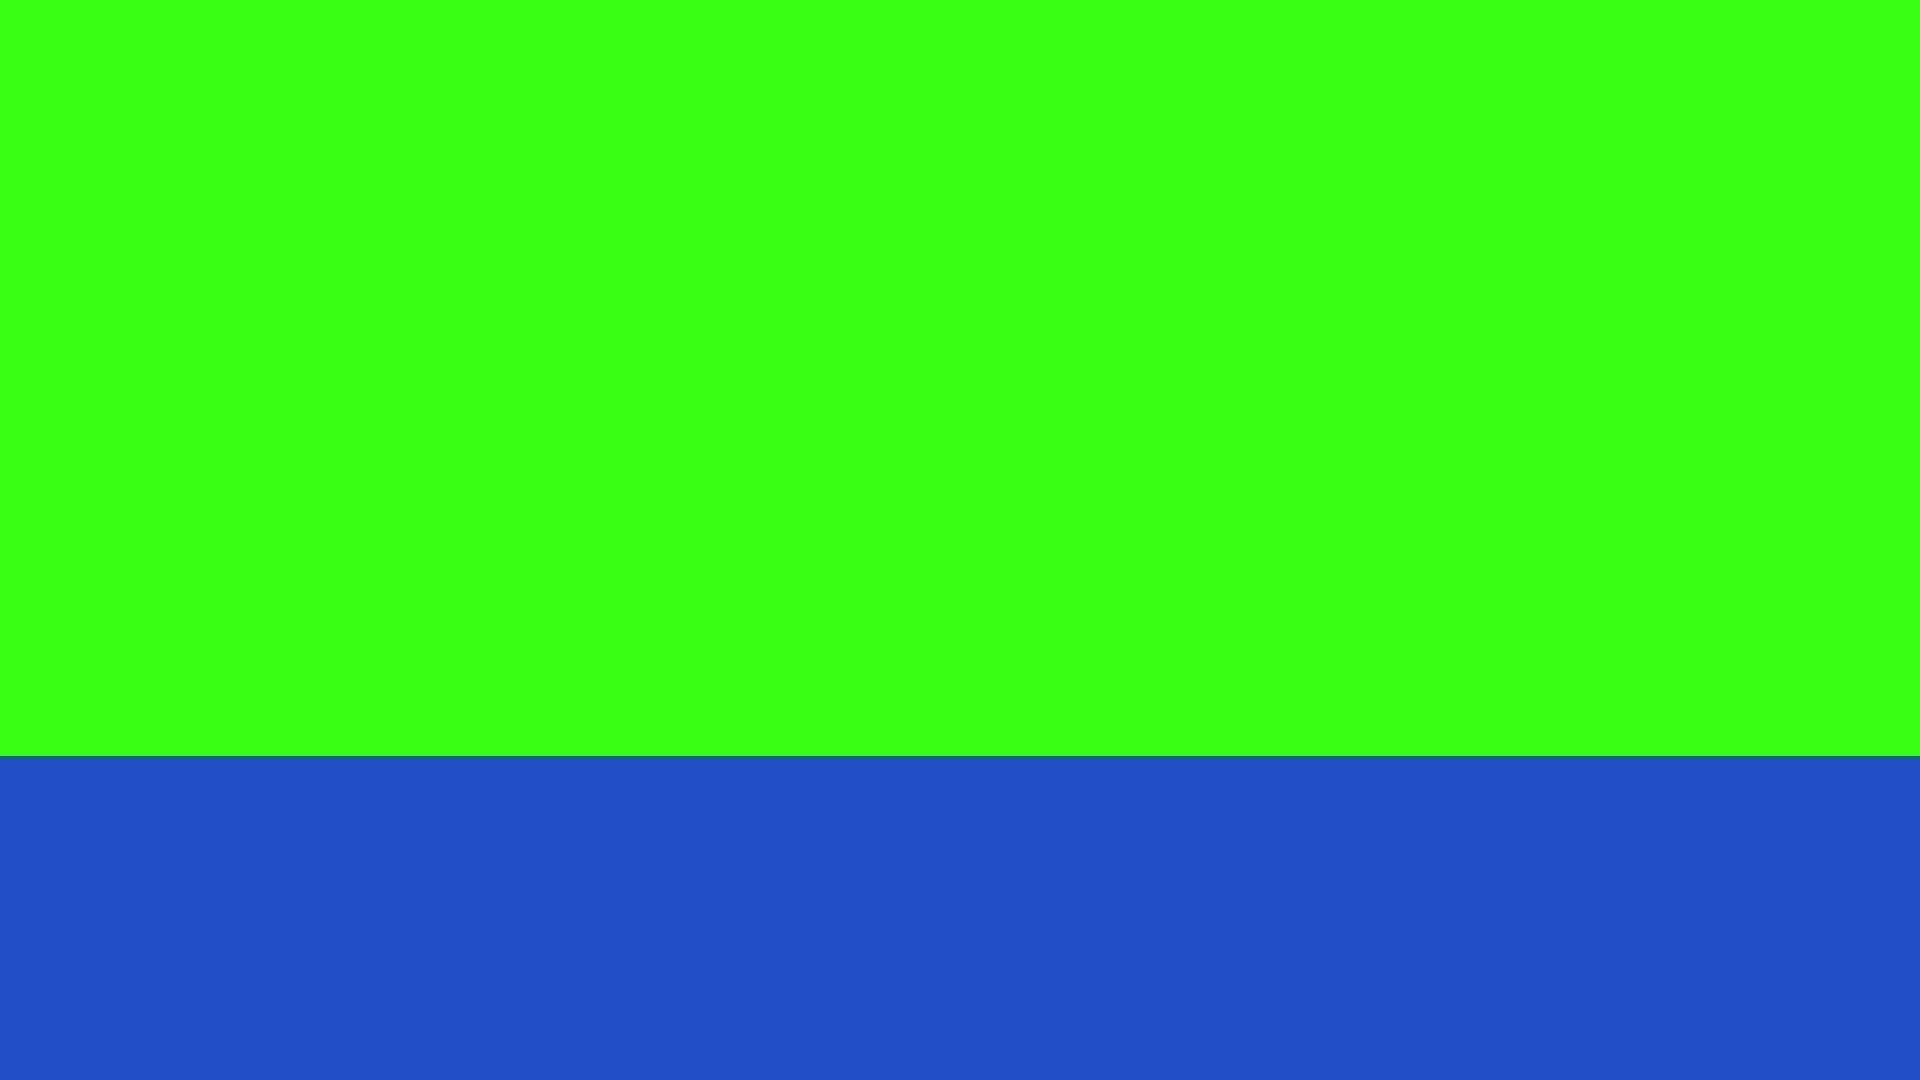 Res: 1920x1080, Neon Green Backgrounds